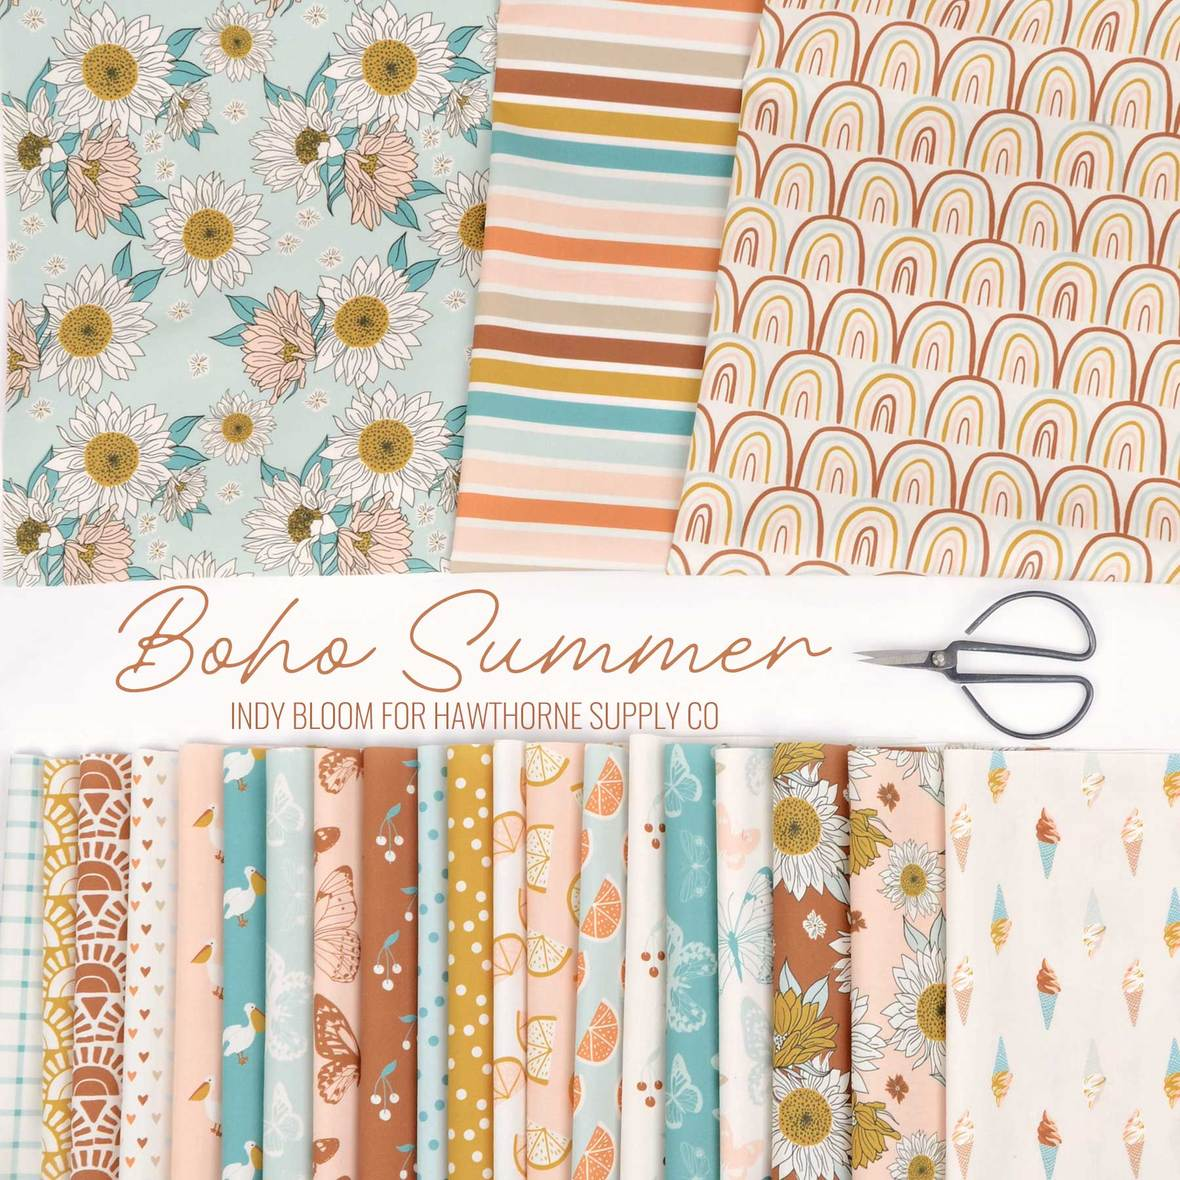 Boho-Summer-Fabric-Indy-Bloom-for-Hawthorne-Supply-Co